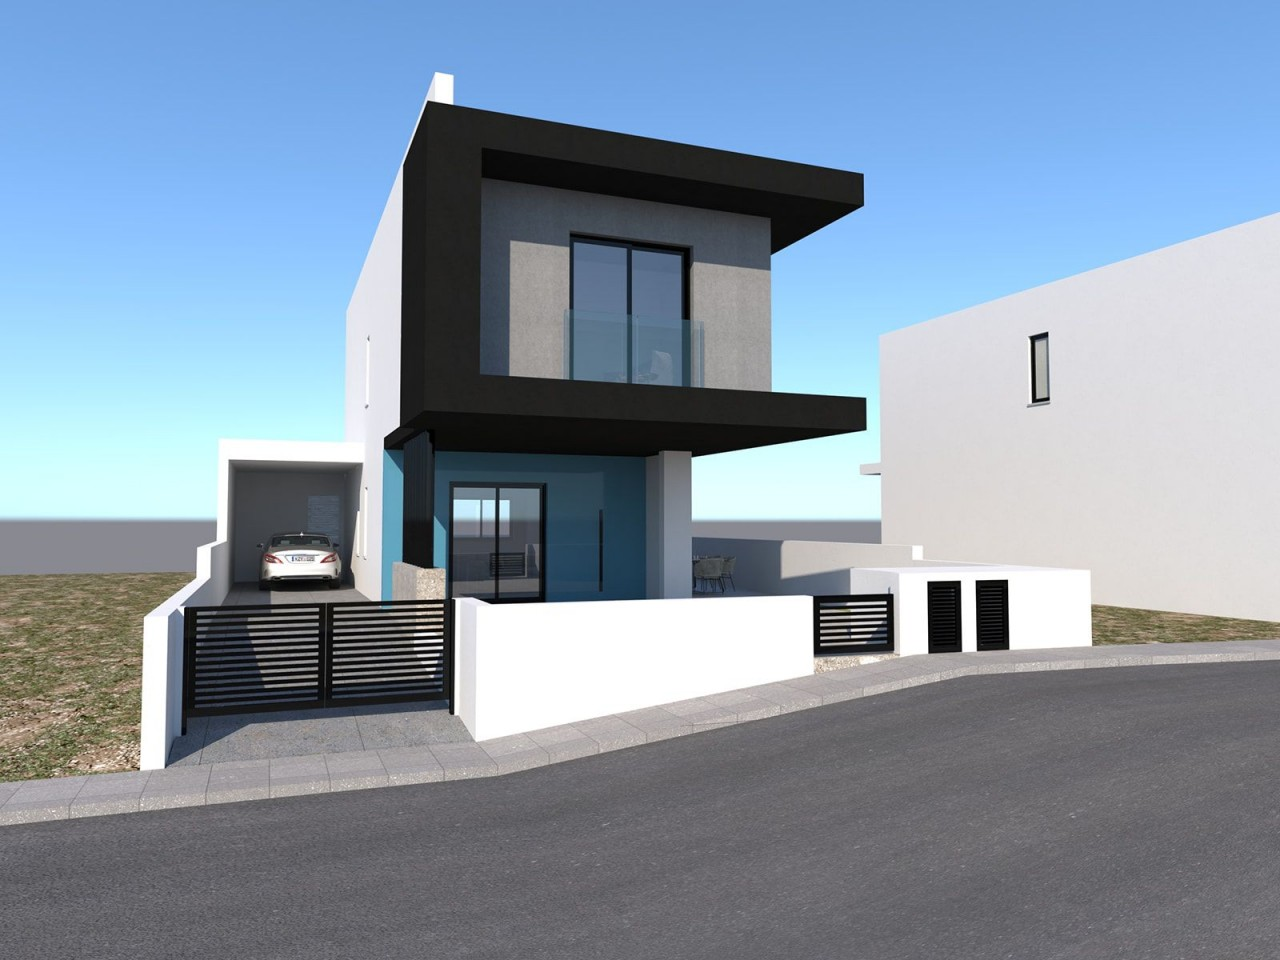 FC-27066: House (Detached) in Agios Athanasios, Limassol for Sale - #5